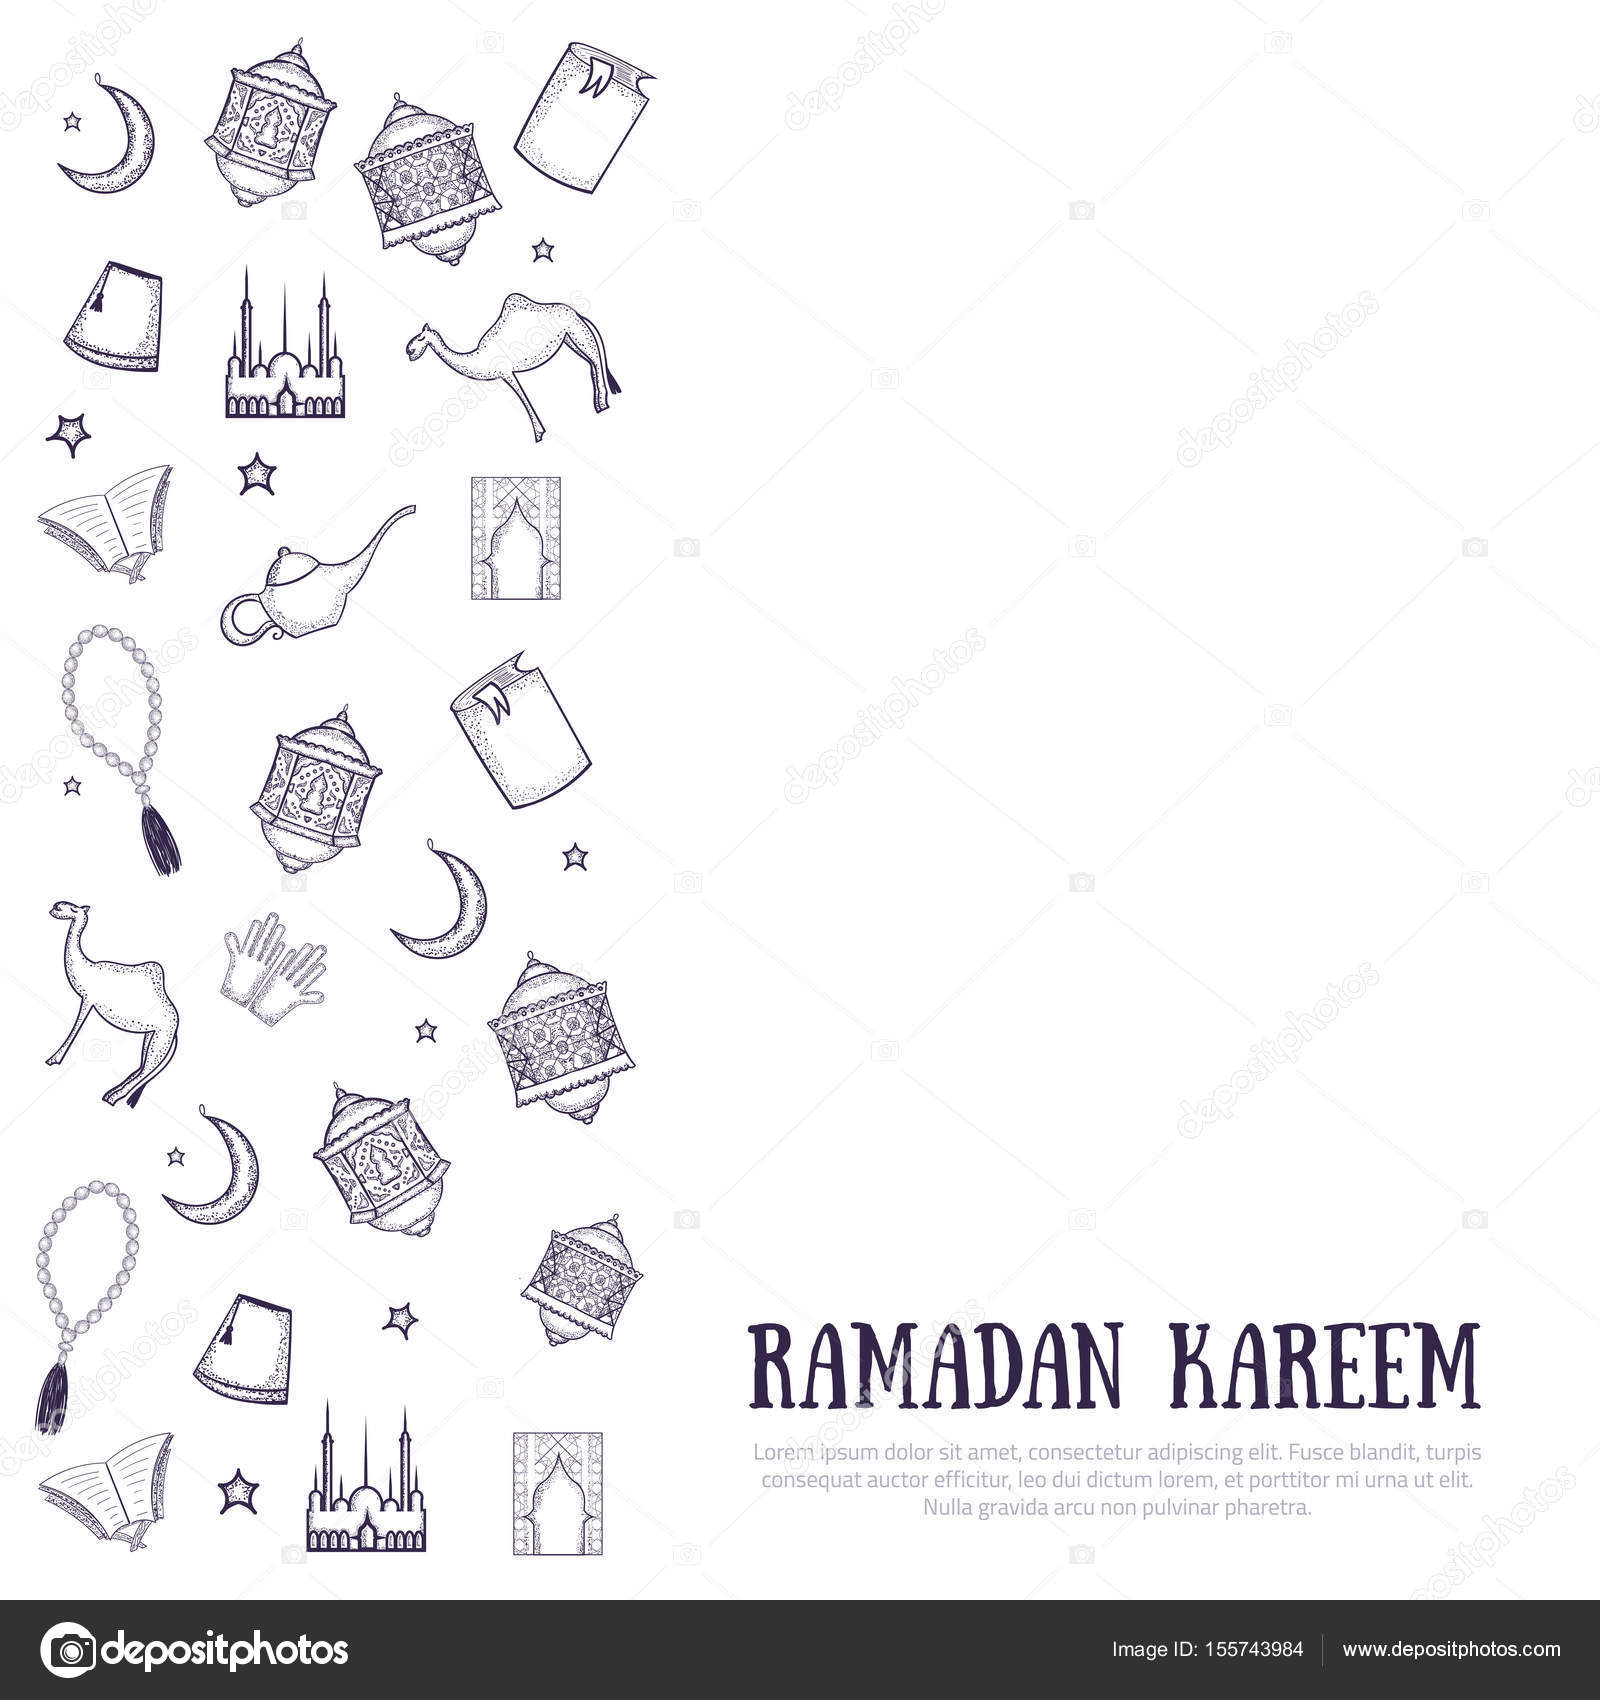 image about Ramadan Cards Printable named Ramadan lantern template printable Printable minimalistic